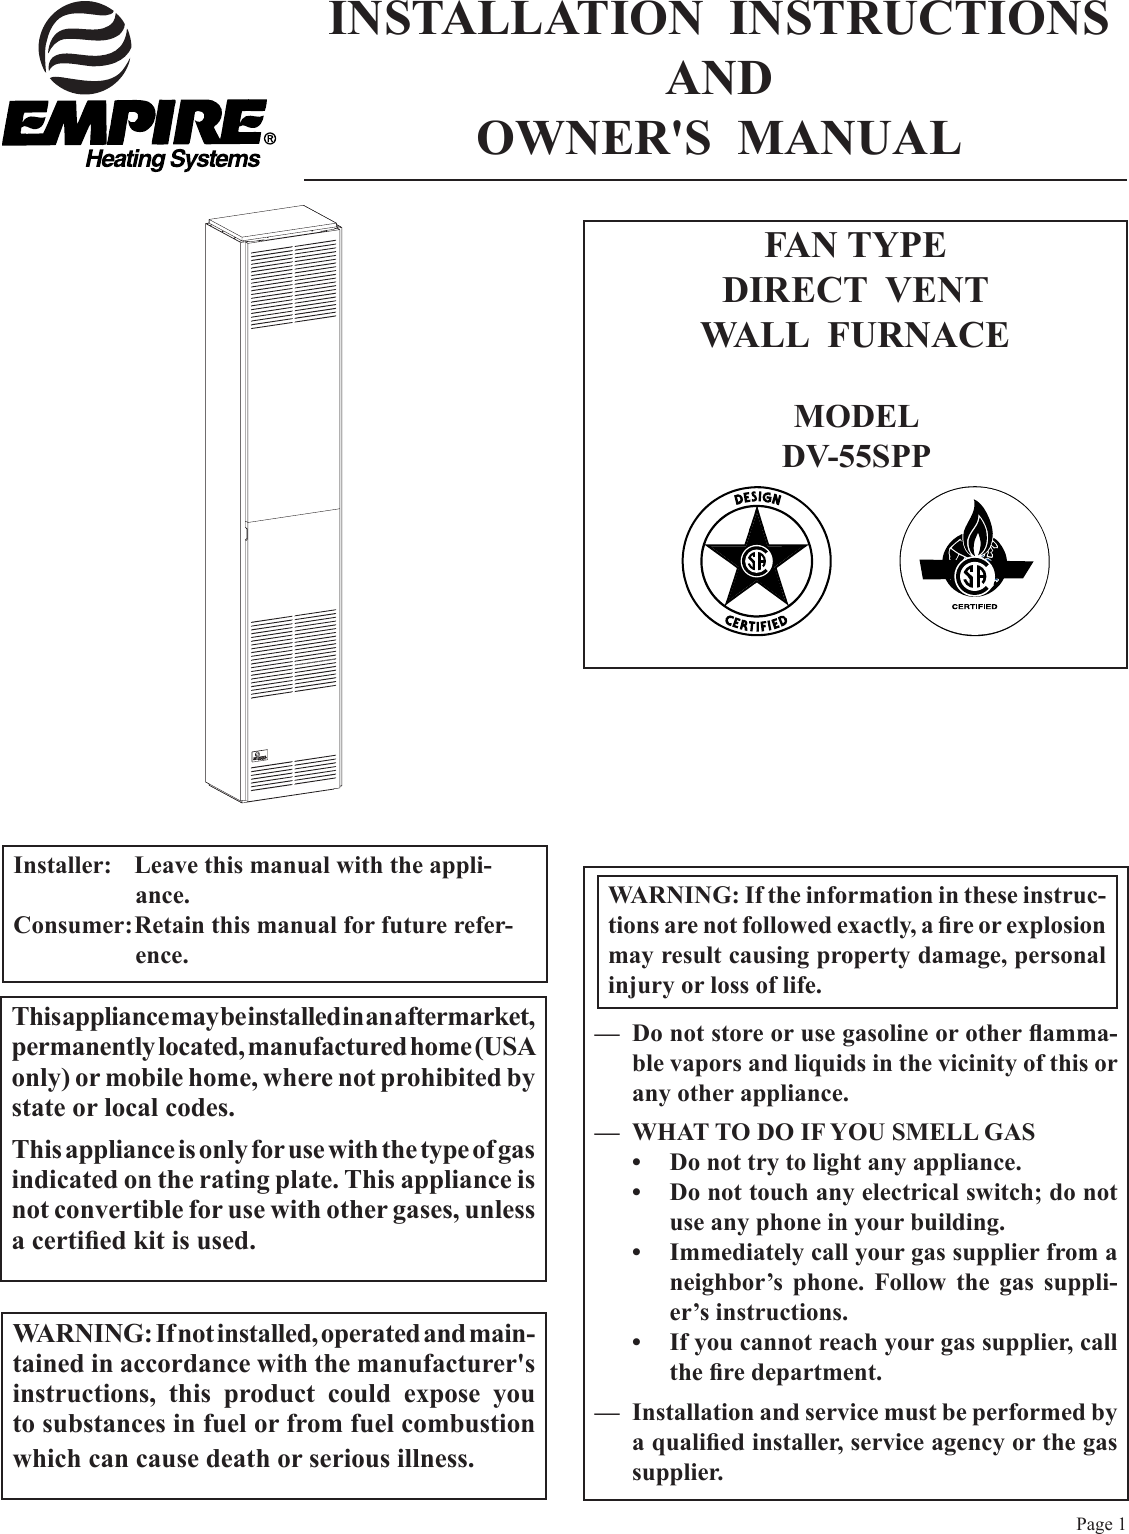 Empire Comfort Systems Dv 55Spp Users Manual 12431 9 0408 DV55PP on empire wall furnace gas valve diagram, empire wall furnace parts, cozy wall furnace wiring diagram, williams wall furnace wiring diagram, gas wall furnace wiring diagram,